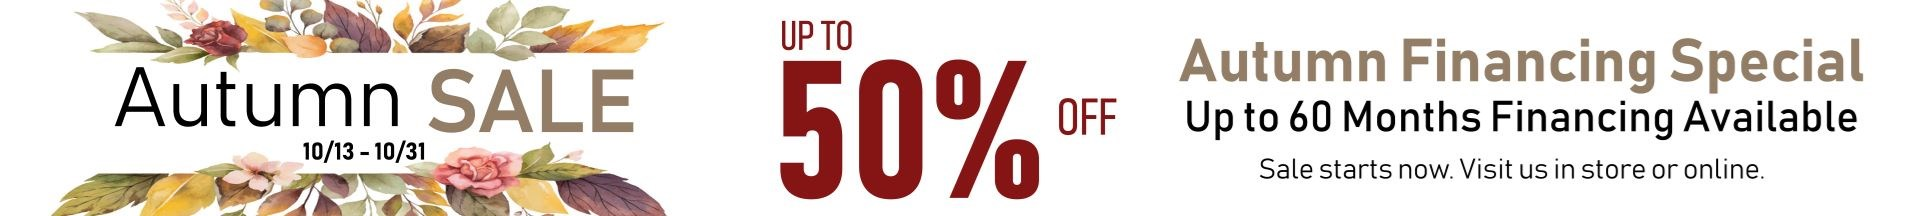 up to 50% during our autumn sale